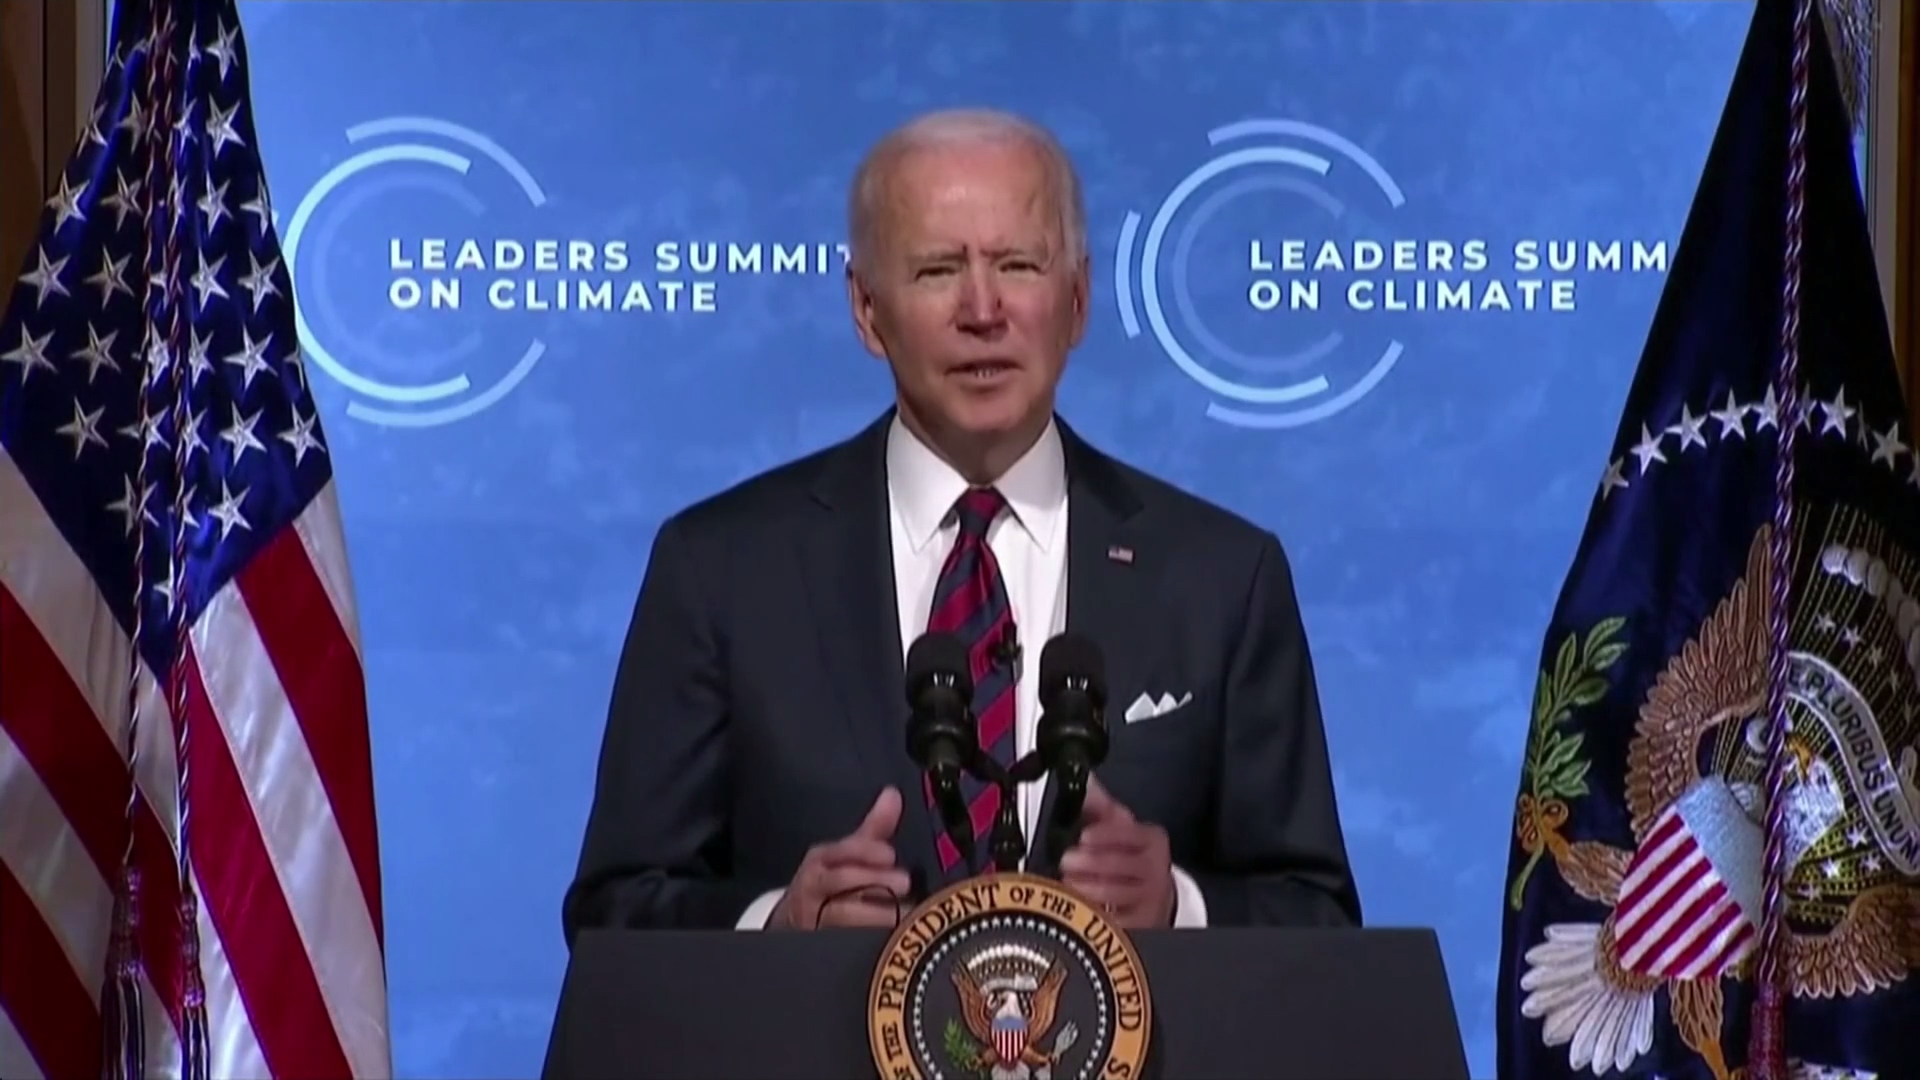 Climate crisis: Biden pledges to cut carbon emissions – but will it make a difference? - channel 4